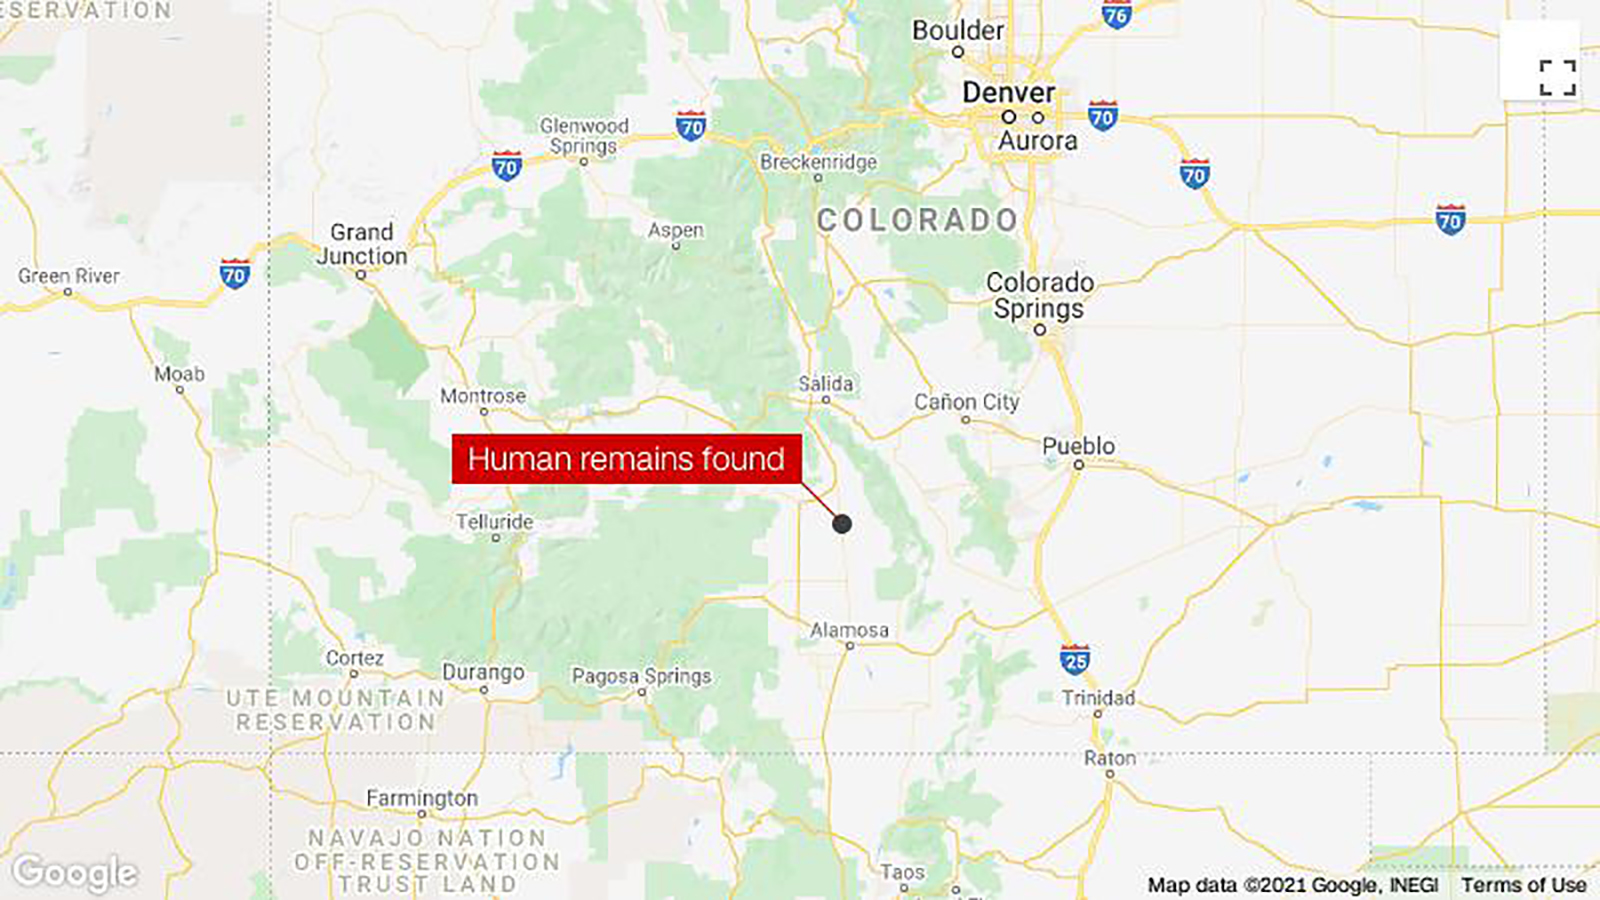 7 people arrested after the mummified remains of a religious group leader were found in Colorado home